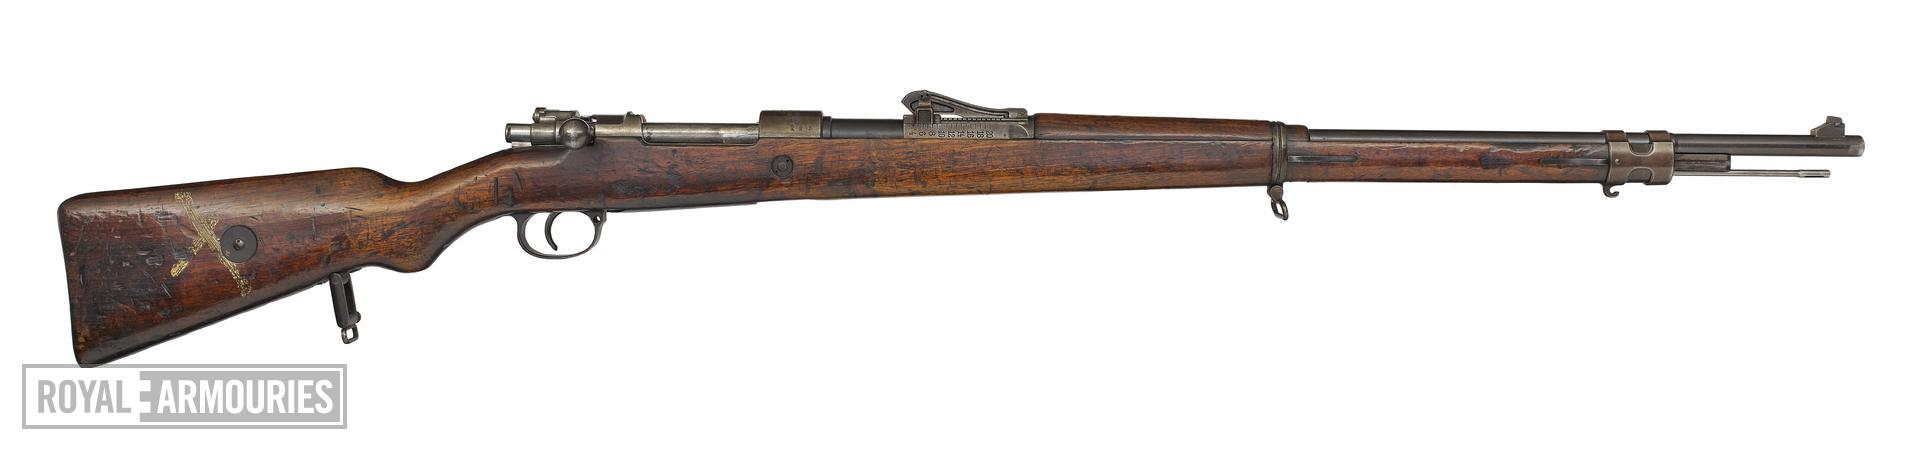 Mauser Gewehr 98 (Gew98) centrefire bolt action rifle, Germany, 1916